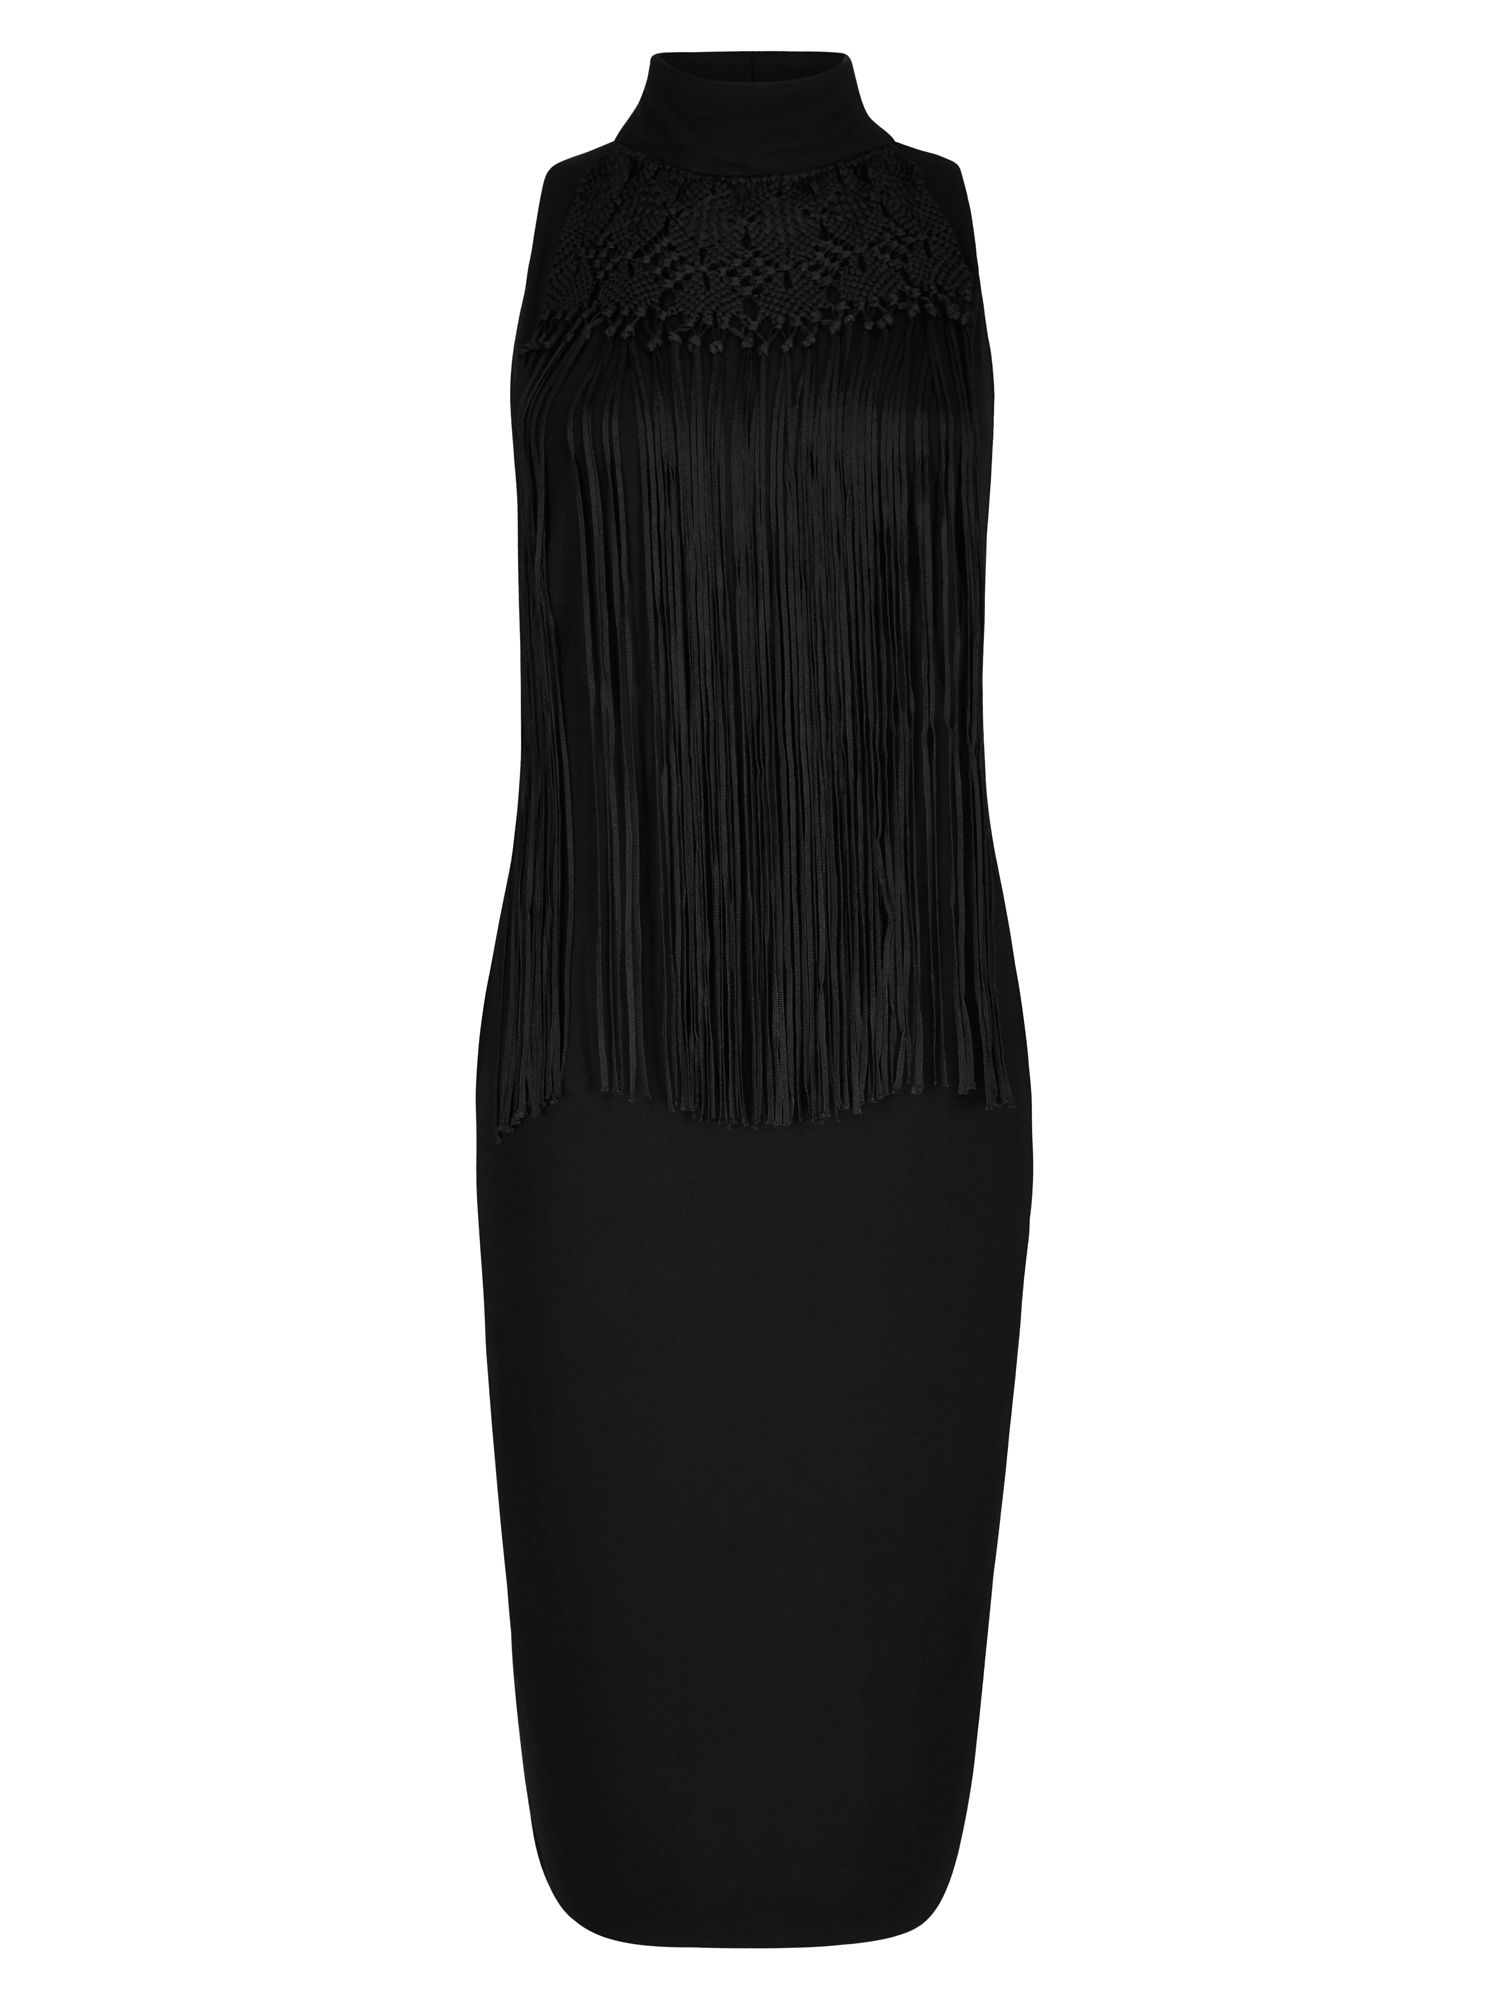 Winser London Macrame Dress, Black